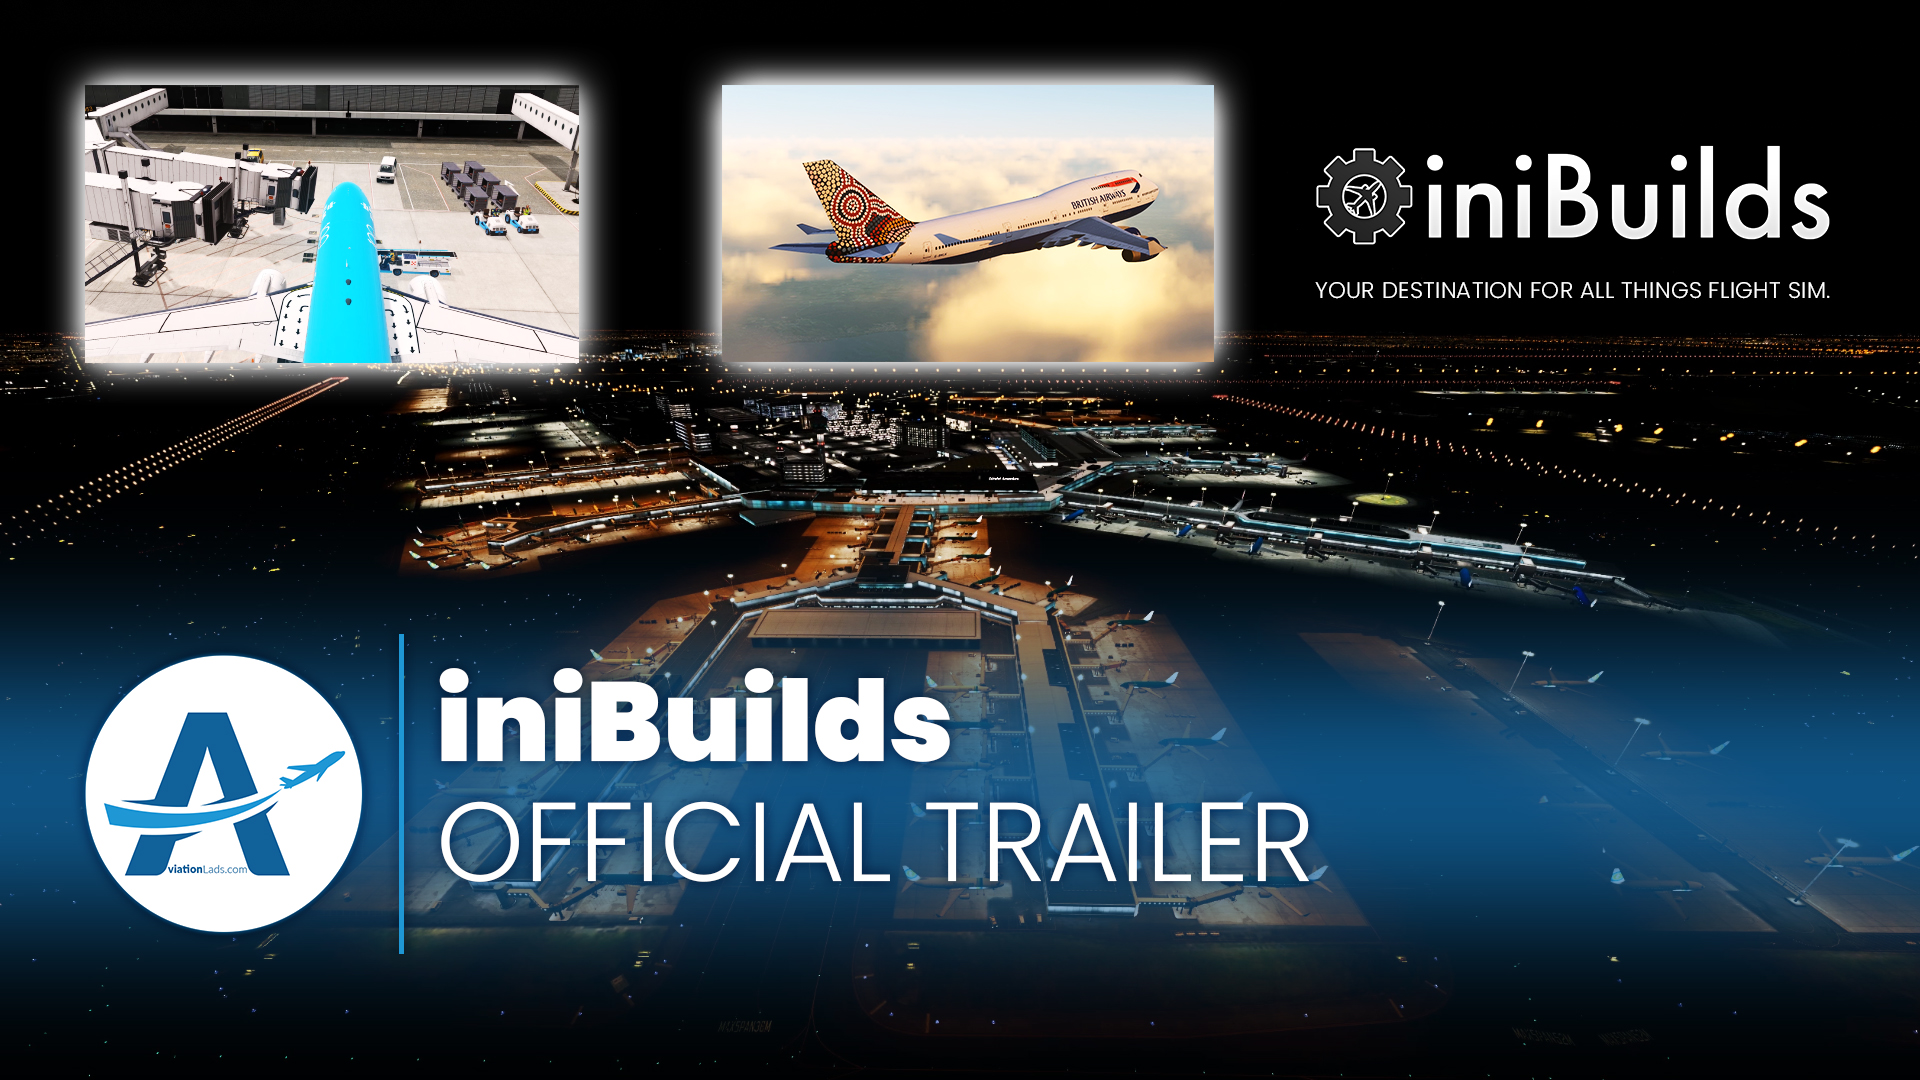 [TRAILER] iniBuilds – All Things Flight Sim!